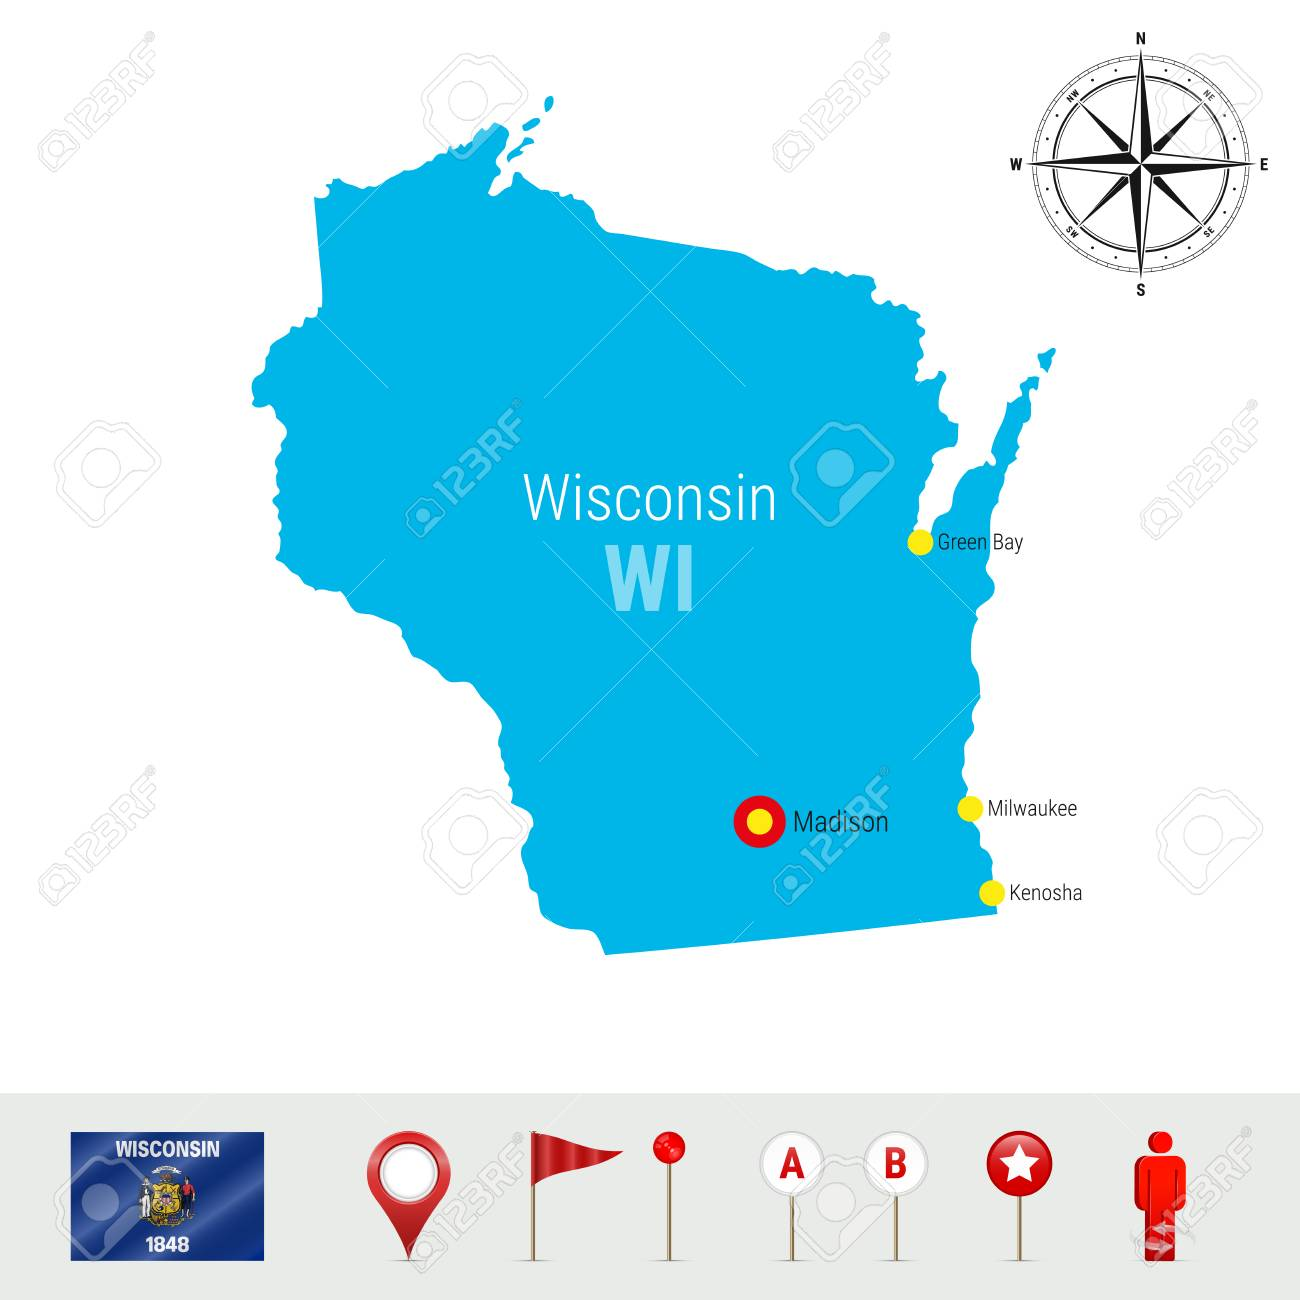 Wisconsin Vector Map Isolated on White Background. High Detailed.. on albany state map, green state map, iowa state map, oakland state map, arlington state map, corpus christi state map, oshkosh state map, galveston state map, billings state map, rochester state map, scranton state map, harvard state map, dayton state map, montgomery state map, lake county state map, tulsa state map, peoria state map, spokane state map, aurora state map, allentown state map,